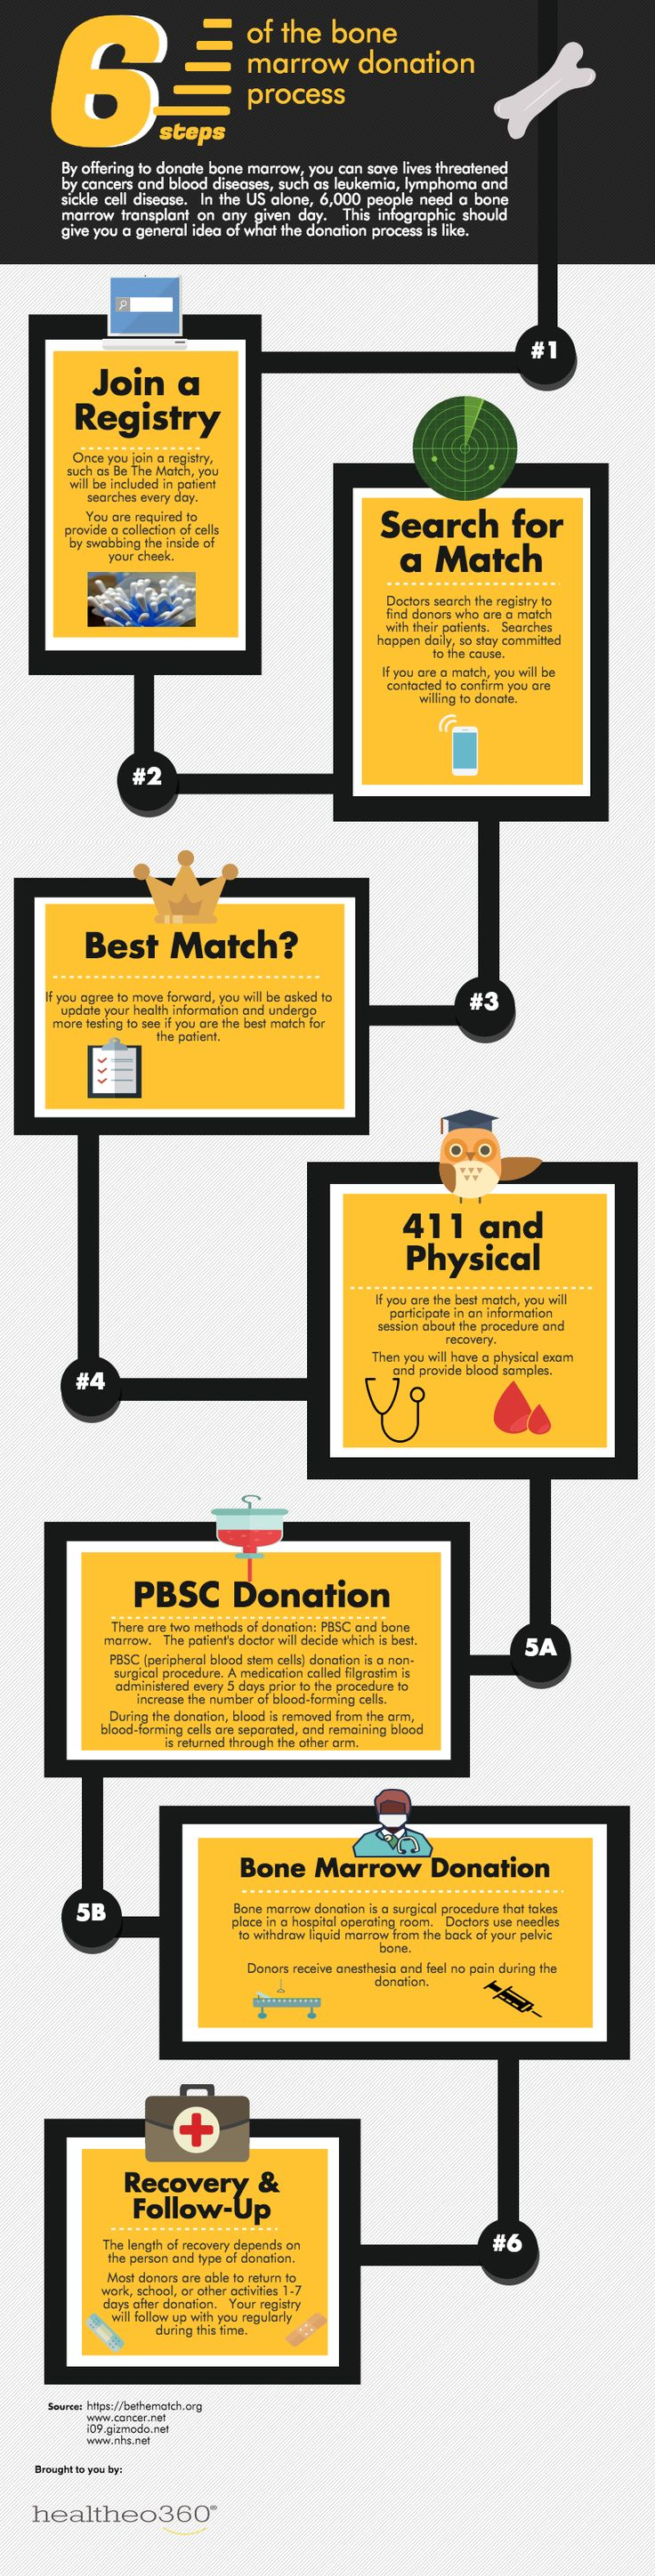 """Bone Marrow Donation Process - The Gift of a Lifetime  Marrow or """"bone marrow"""" is the soft tissue in the cavities of bones that is involved in the production of all blood cells in the body.  Every year, thousands of people need donated marrow to treat a range of diseases and blood disorders.  If you are interested in becoming a bone marrow donor, this infographic should give you a general idea of what the process entails…"""